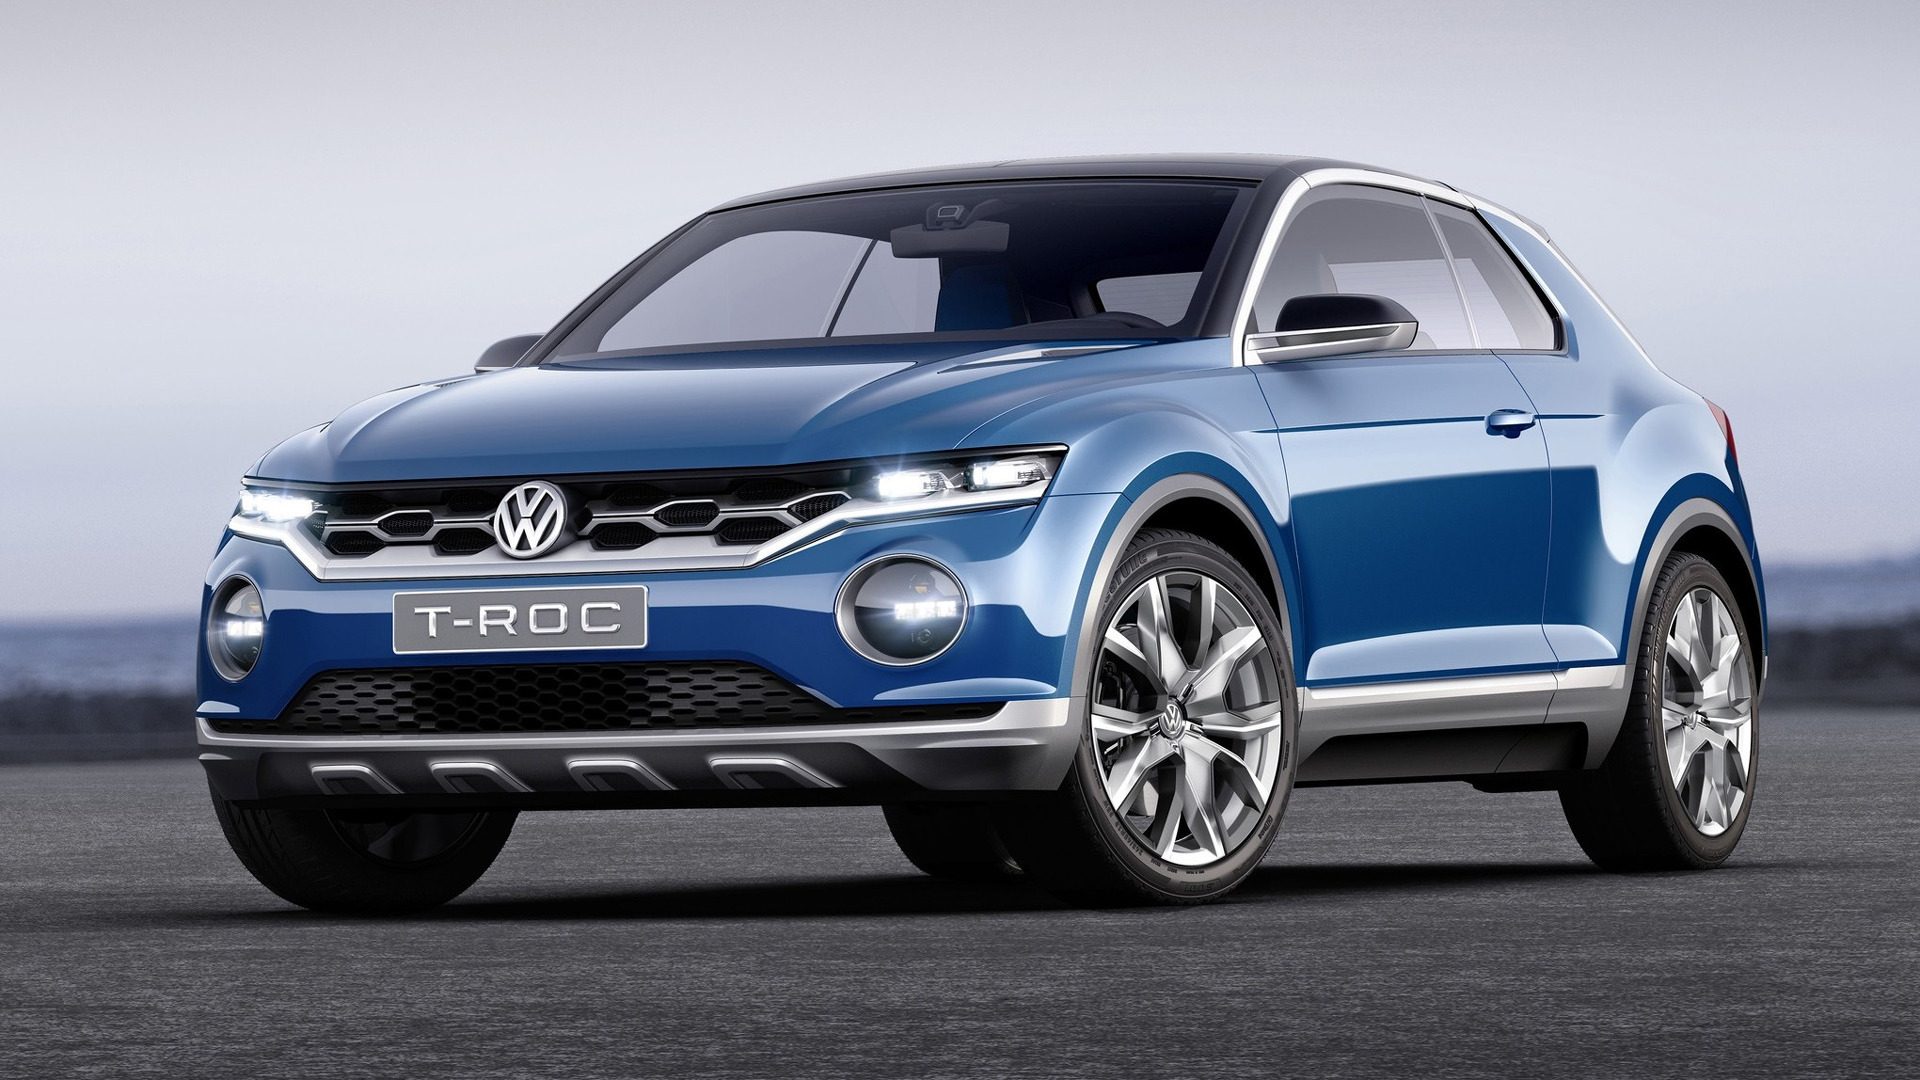 vw t roc compact crossover set for 2019 launch in u s. Black Bedroom Furniture Sets. Home Design Ideas